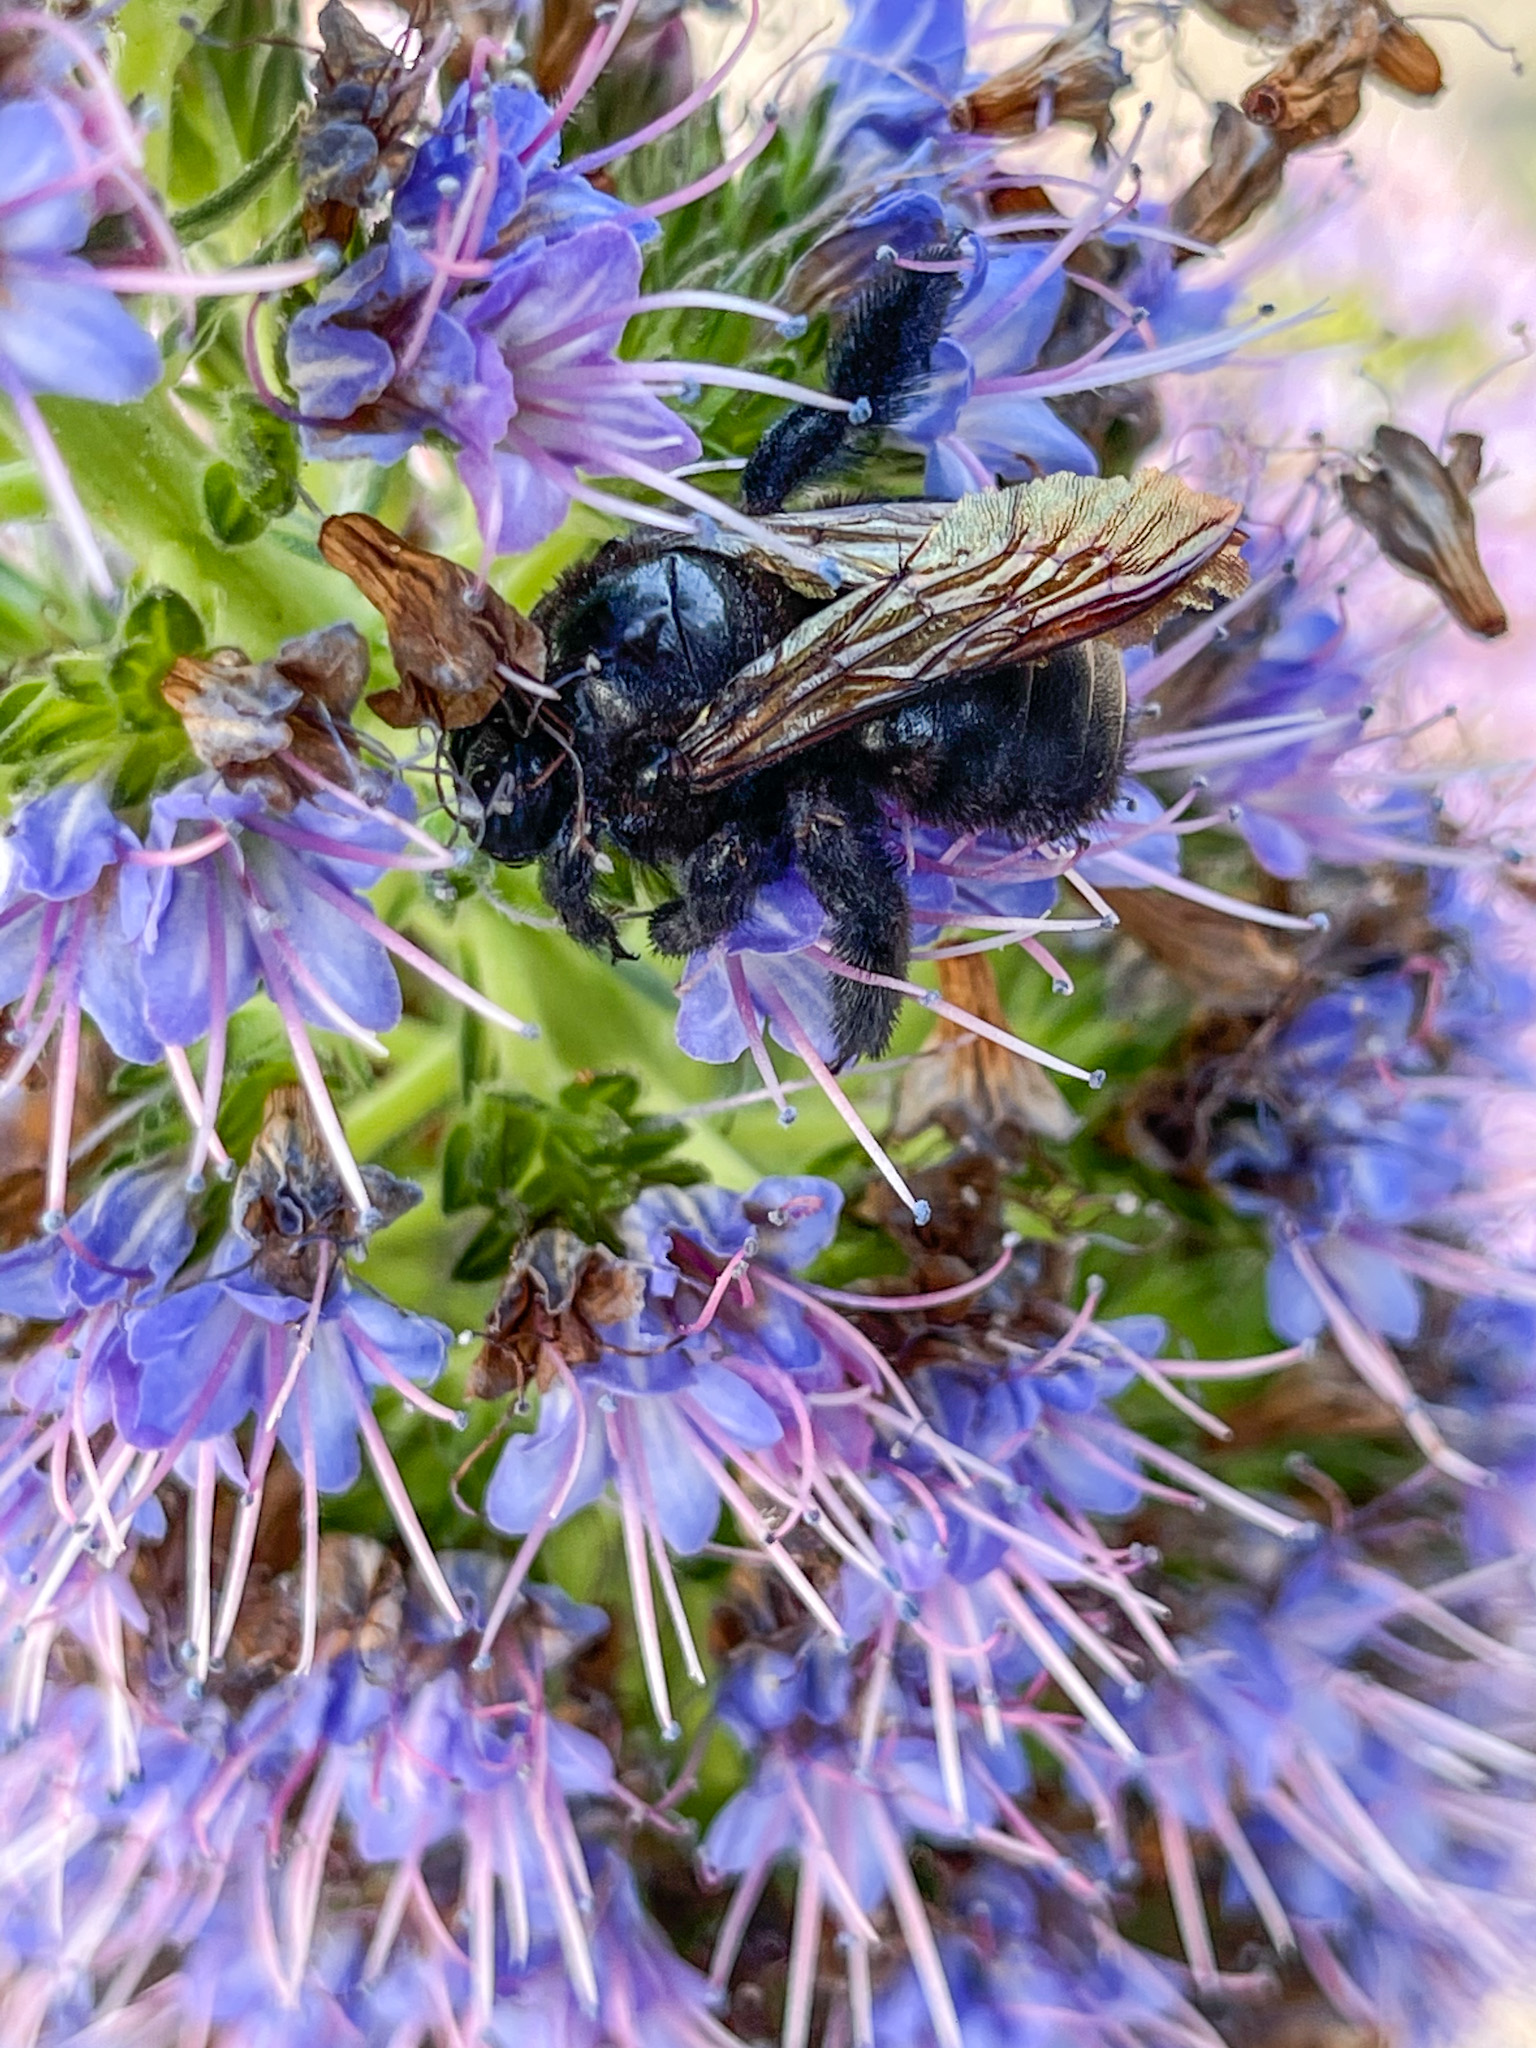 A black carpenter bee nestled in a series of blue flowers.